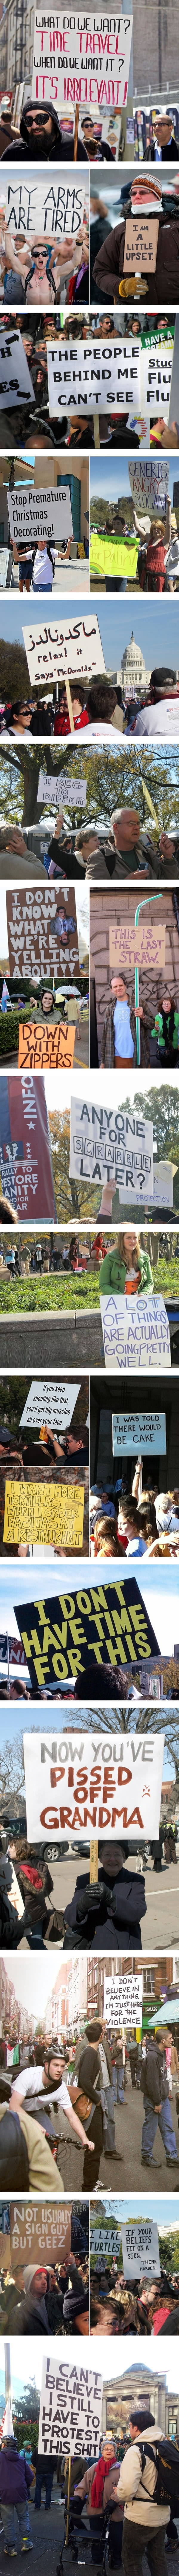 Funniest protest signs